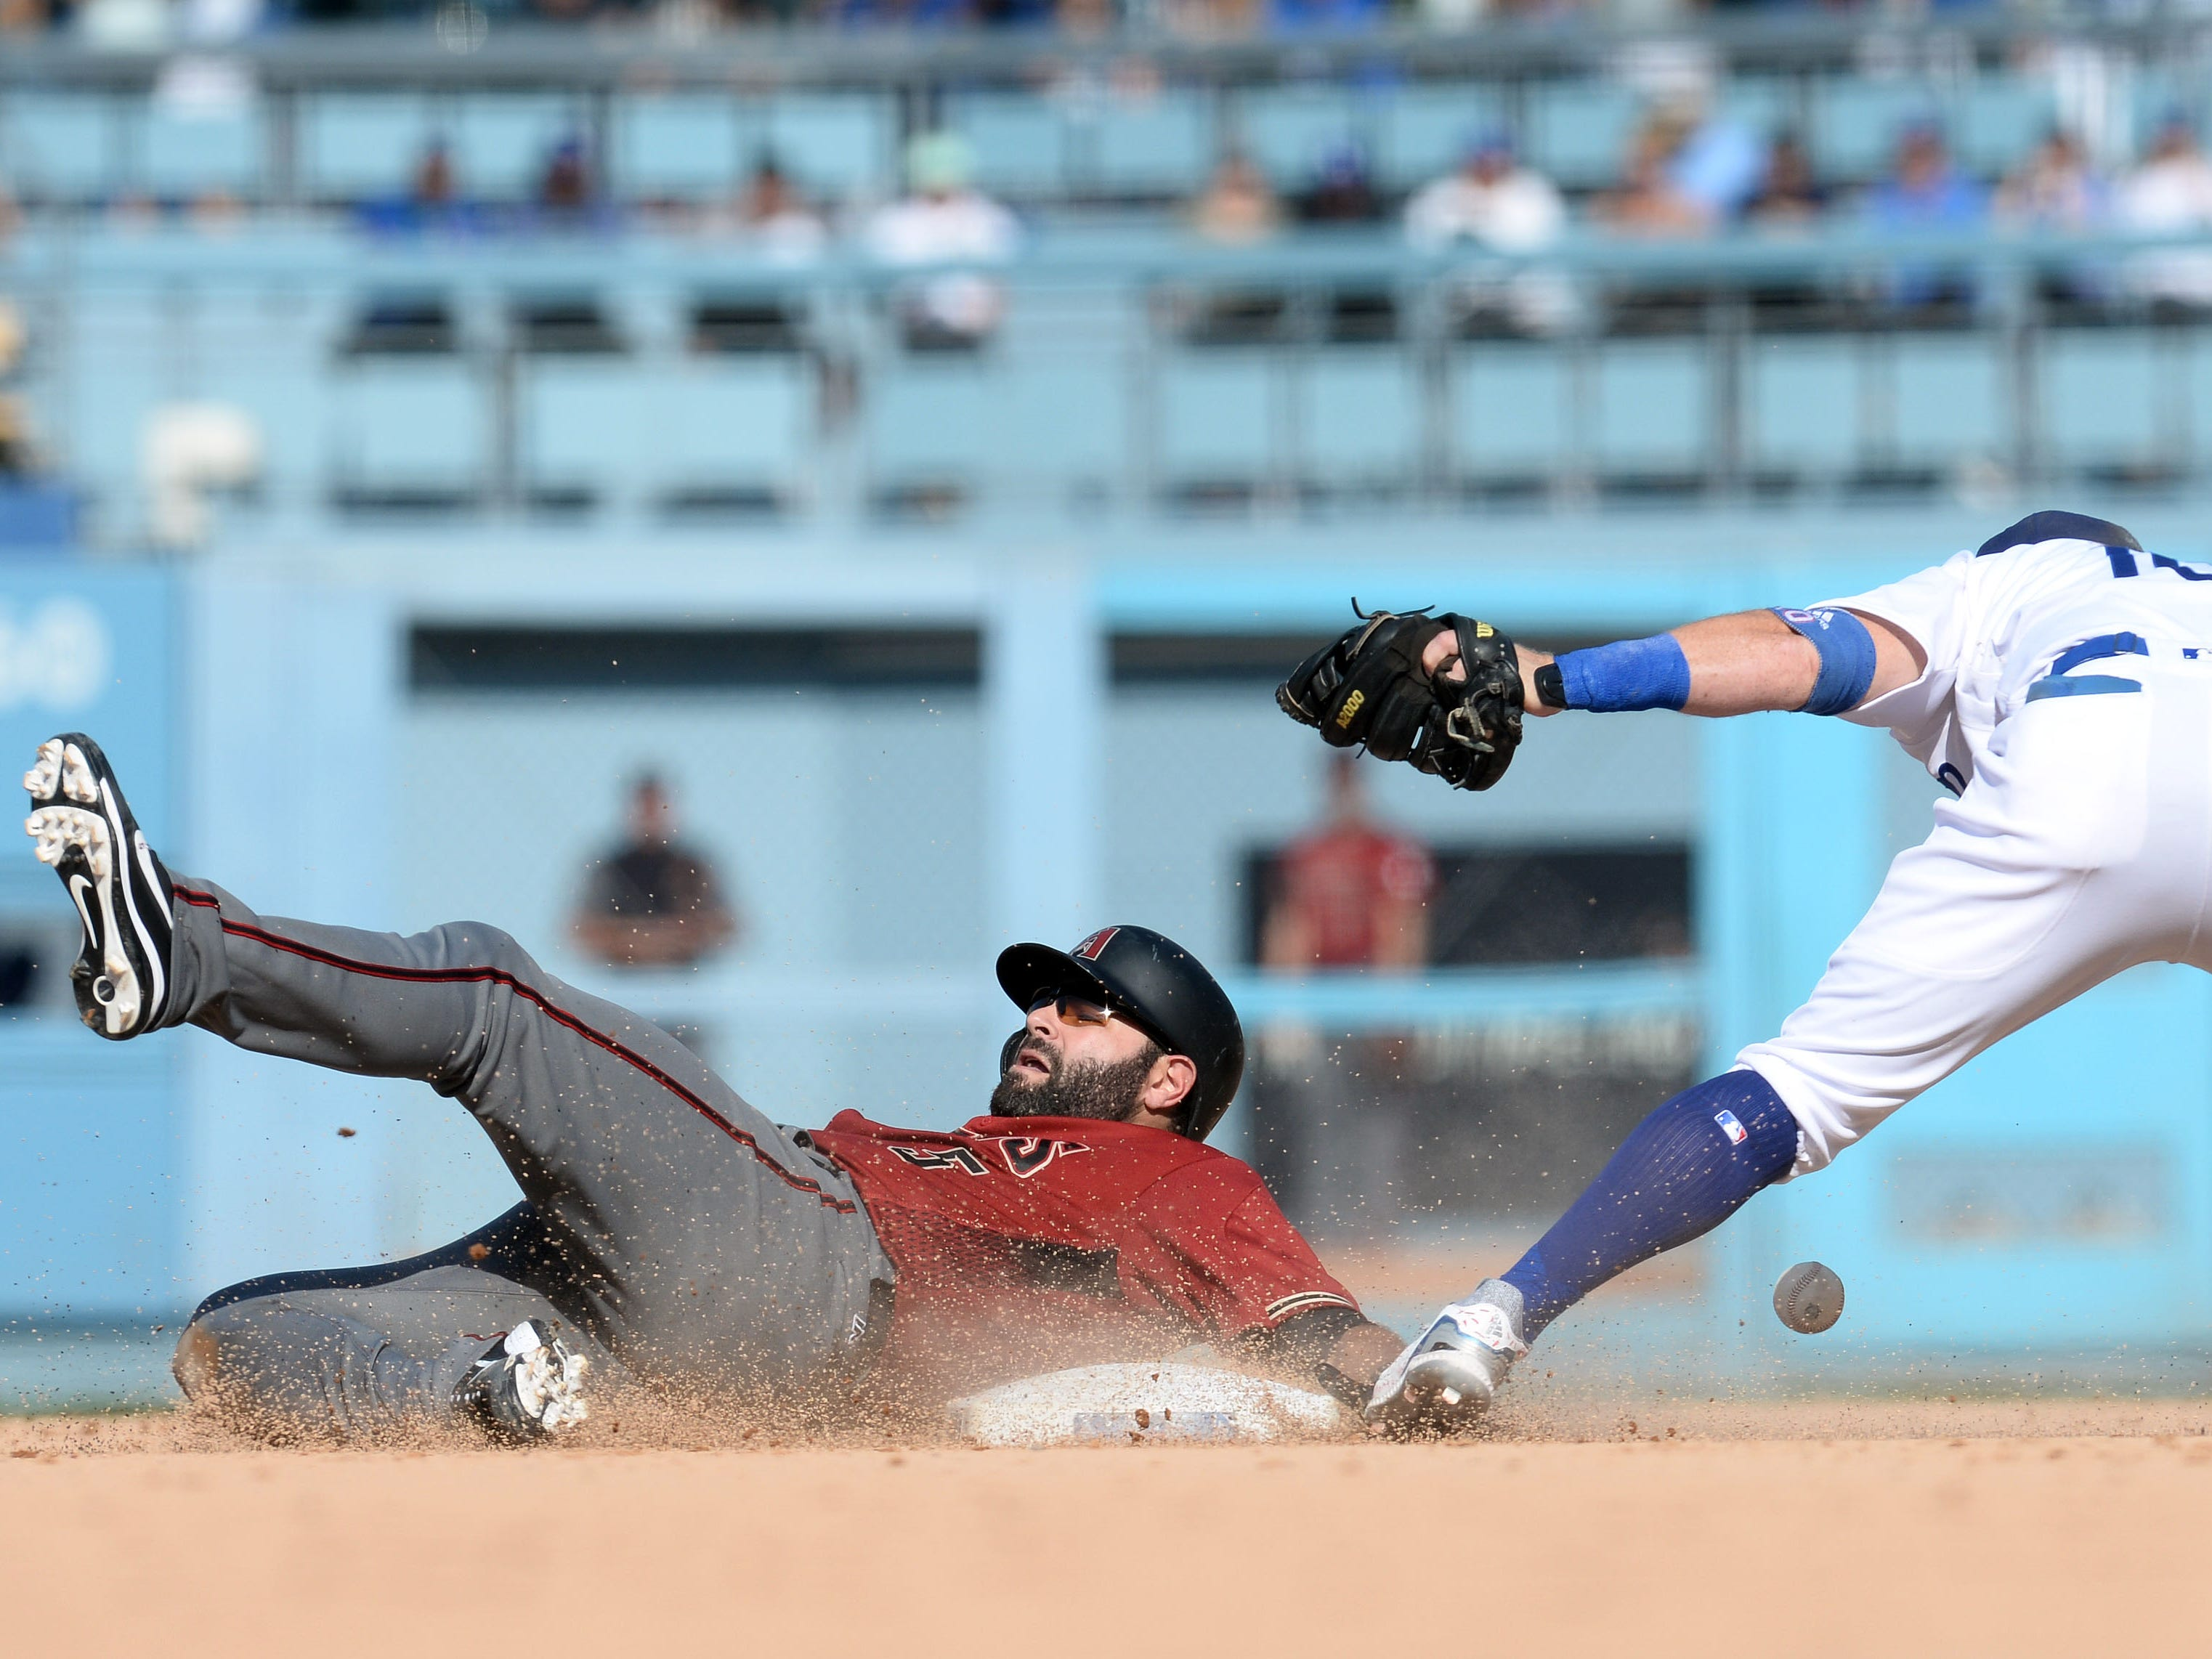 September 2, 2018; Los Angeles, CA, USA; Arizona Diamondbacks catcher Alex Avila (5) reaches second on a double against the Los Angeles Dodgers in the ninth inning at Dodger Stadium. Mandatory Credit: Gary A. Vasquez-USA TODAY Sports